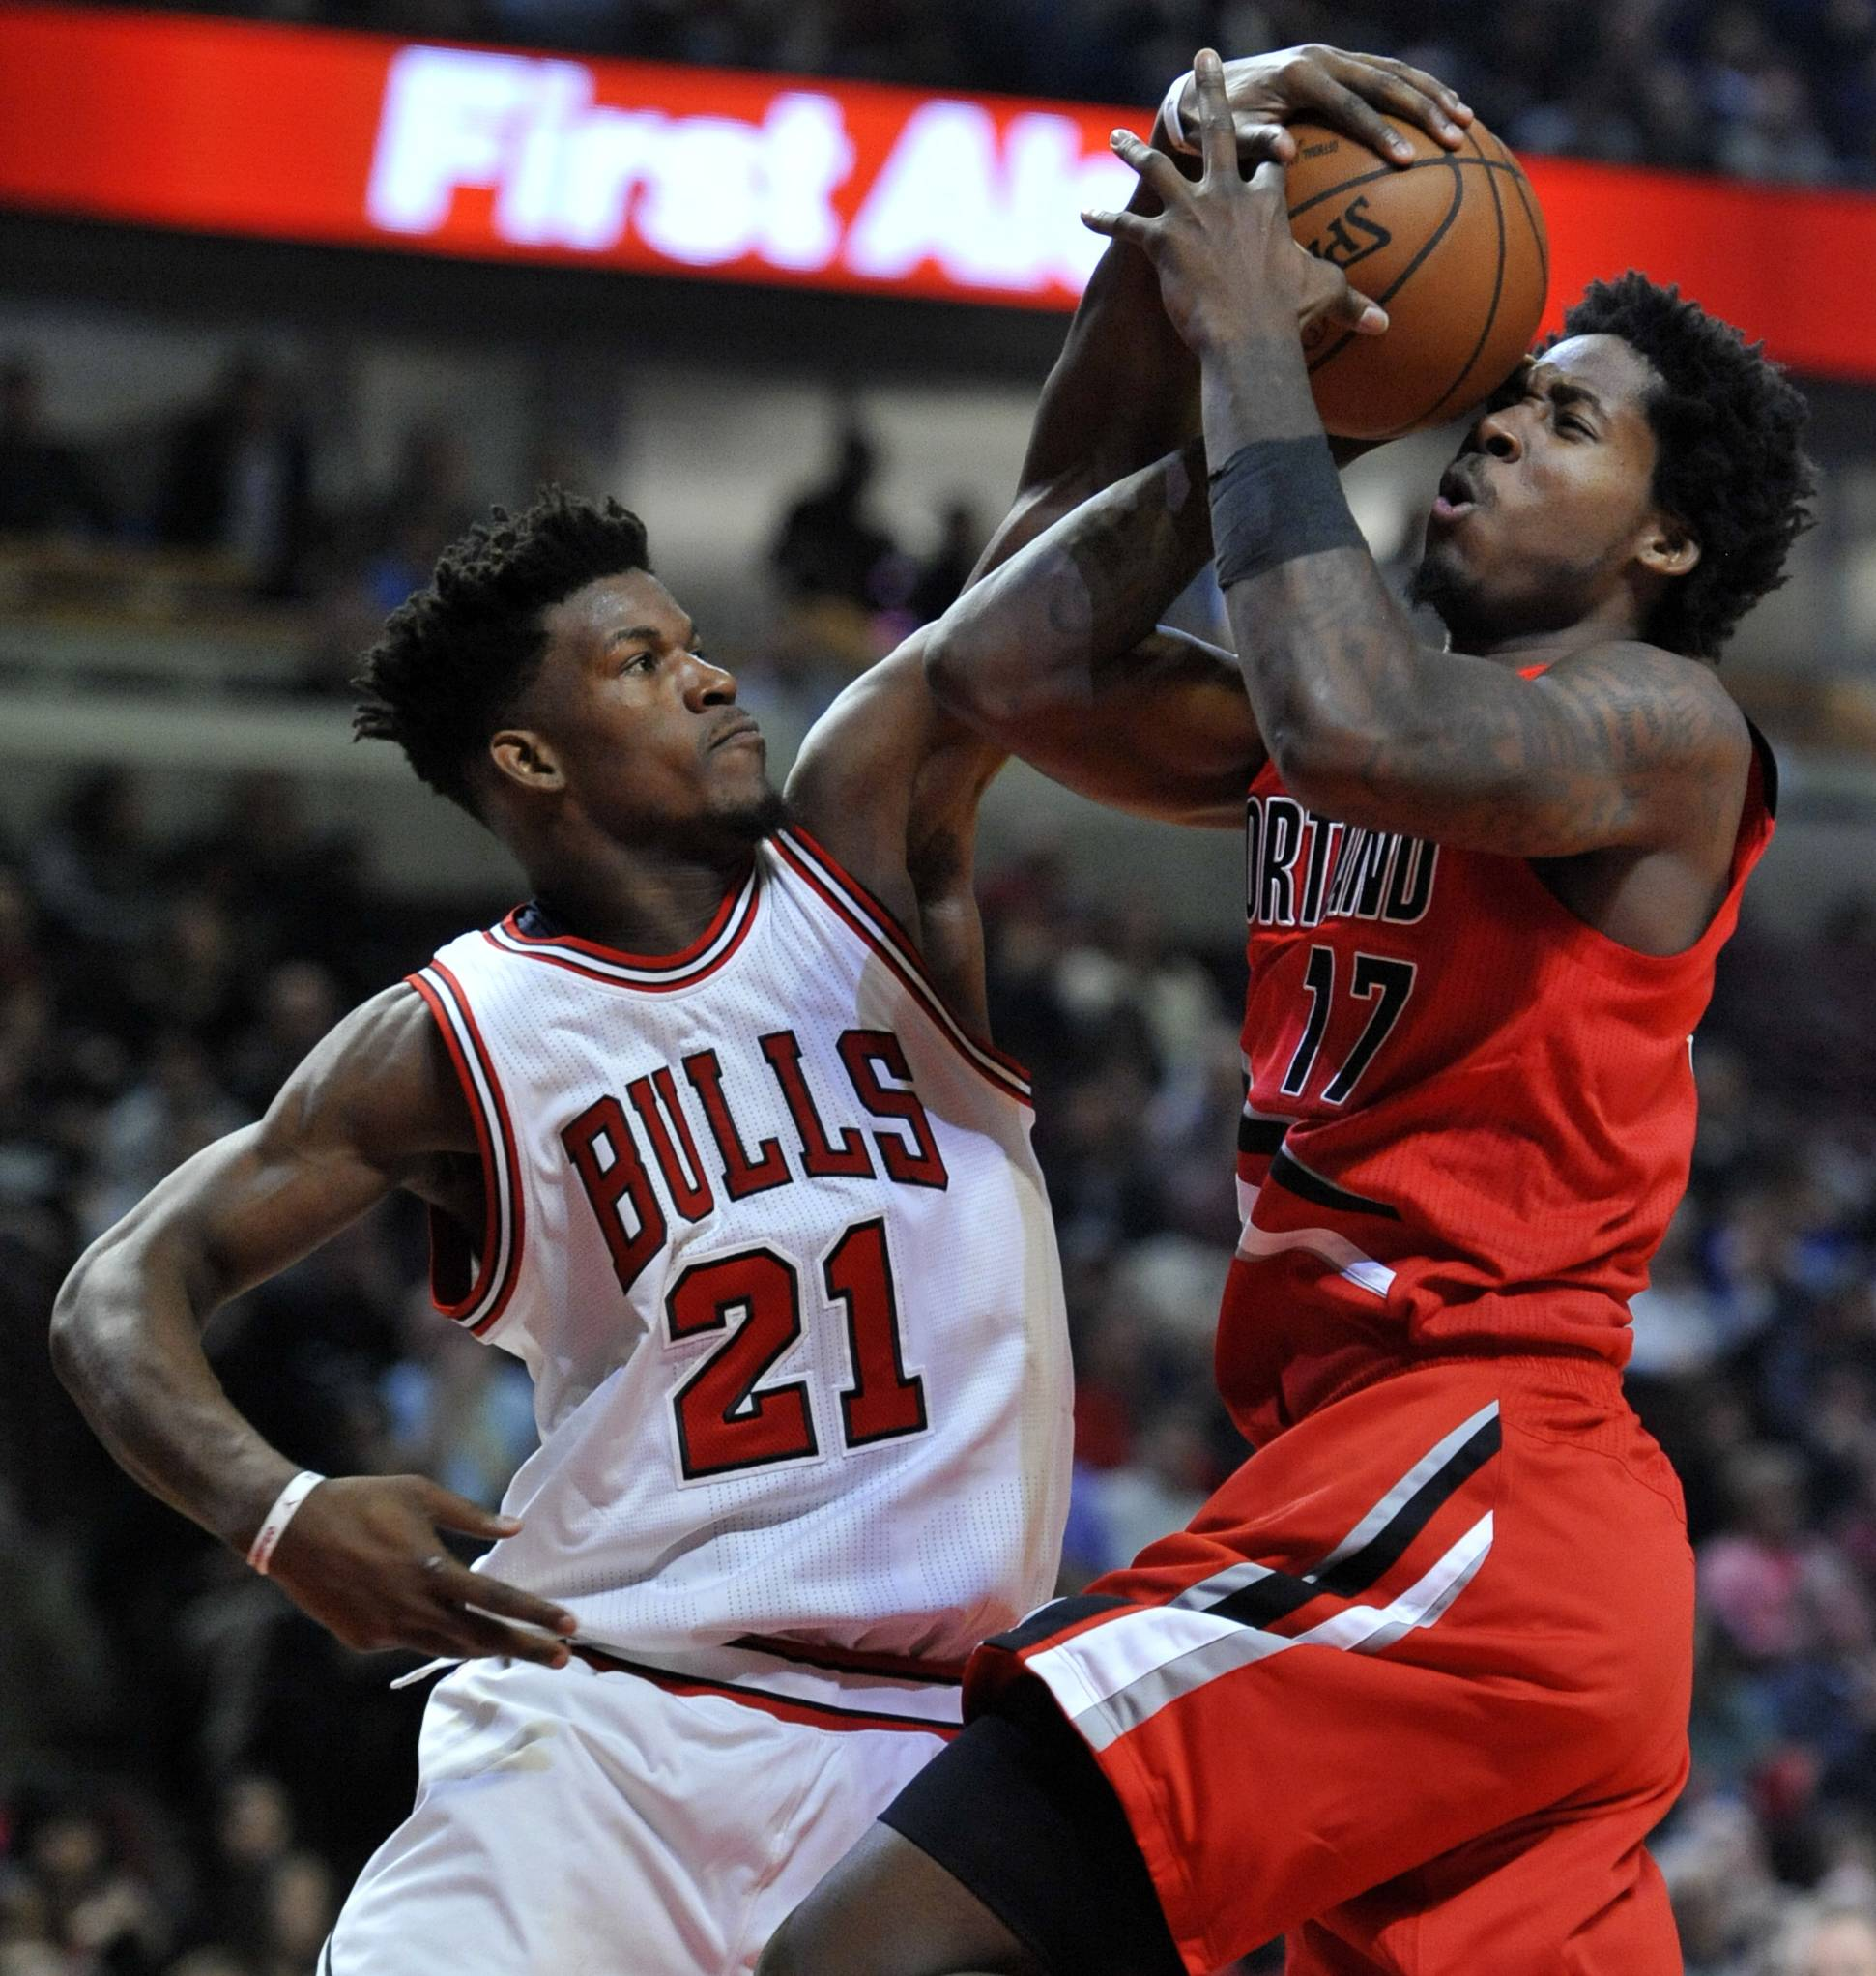 Portland Trail Blazers' Ed Davis (17) goes up for a shot against Chicago Bulls' Jimmy Butler (21) during the first half of an NBA basketball game, Monday, Dec. 5 2016, in Chicago.